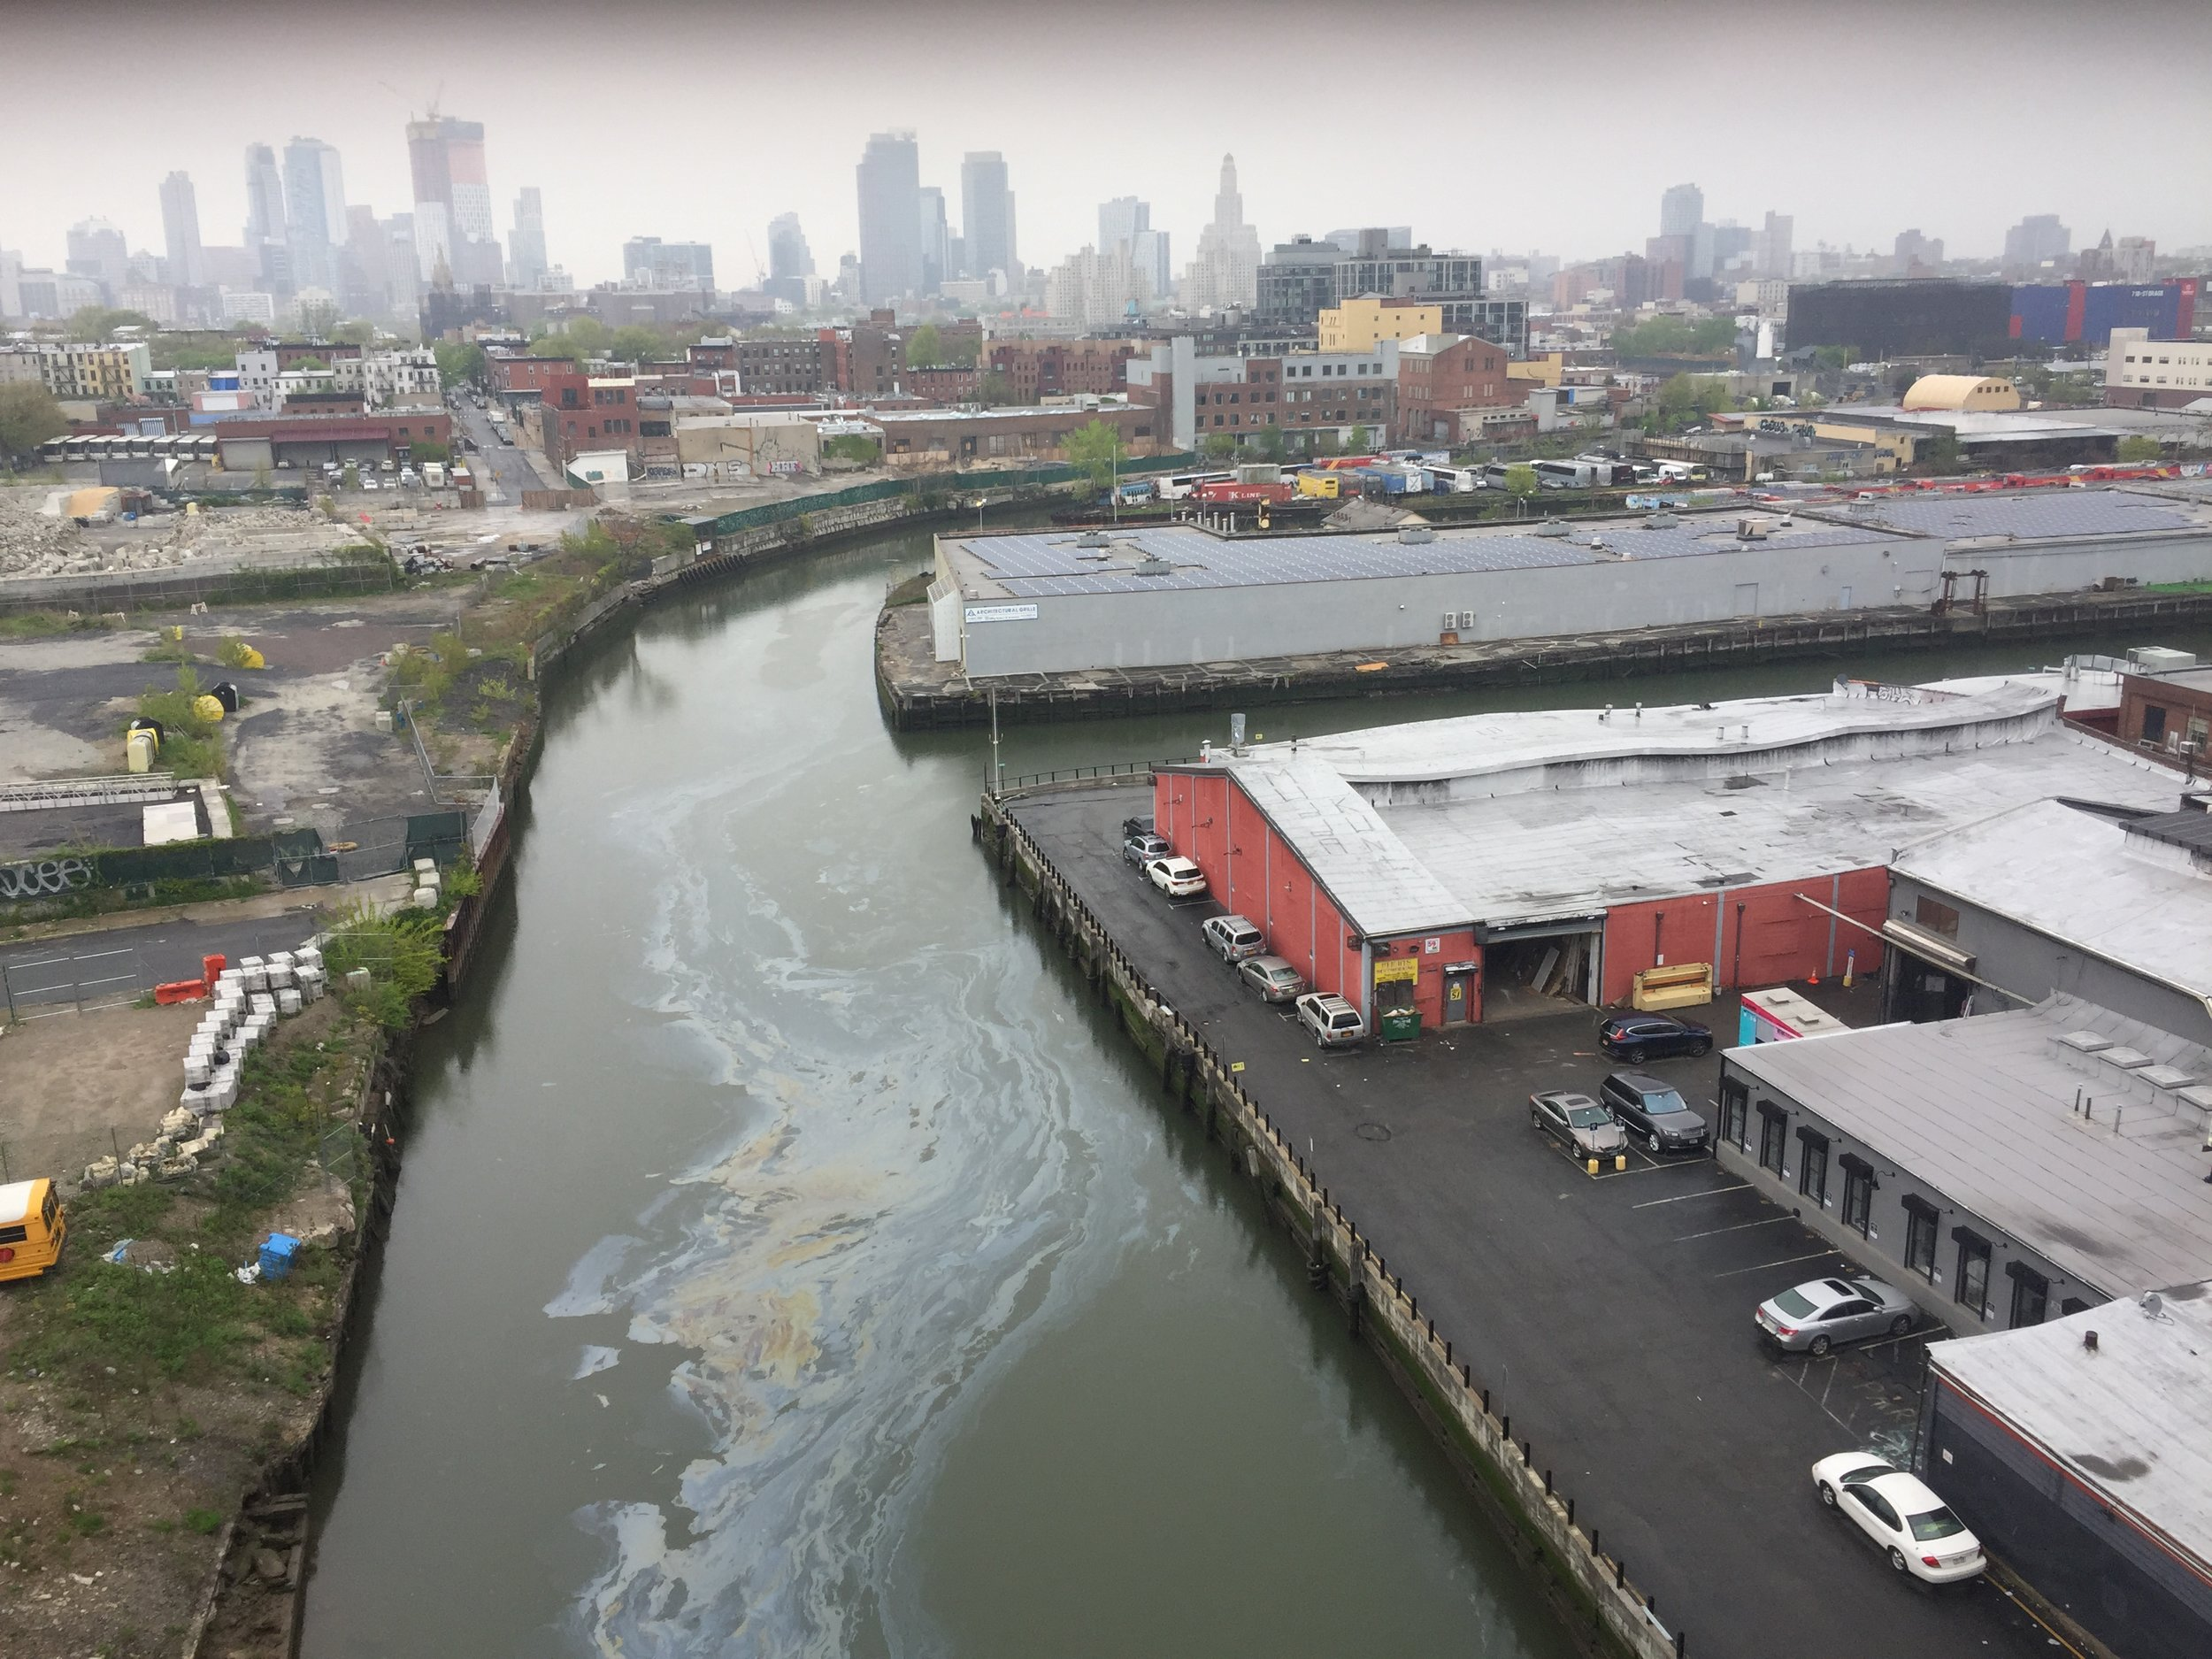 The view from Smith & Ninth Street Station - looking north along the Gowanus Canal towards downtown Brooklyn